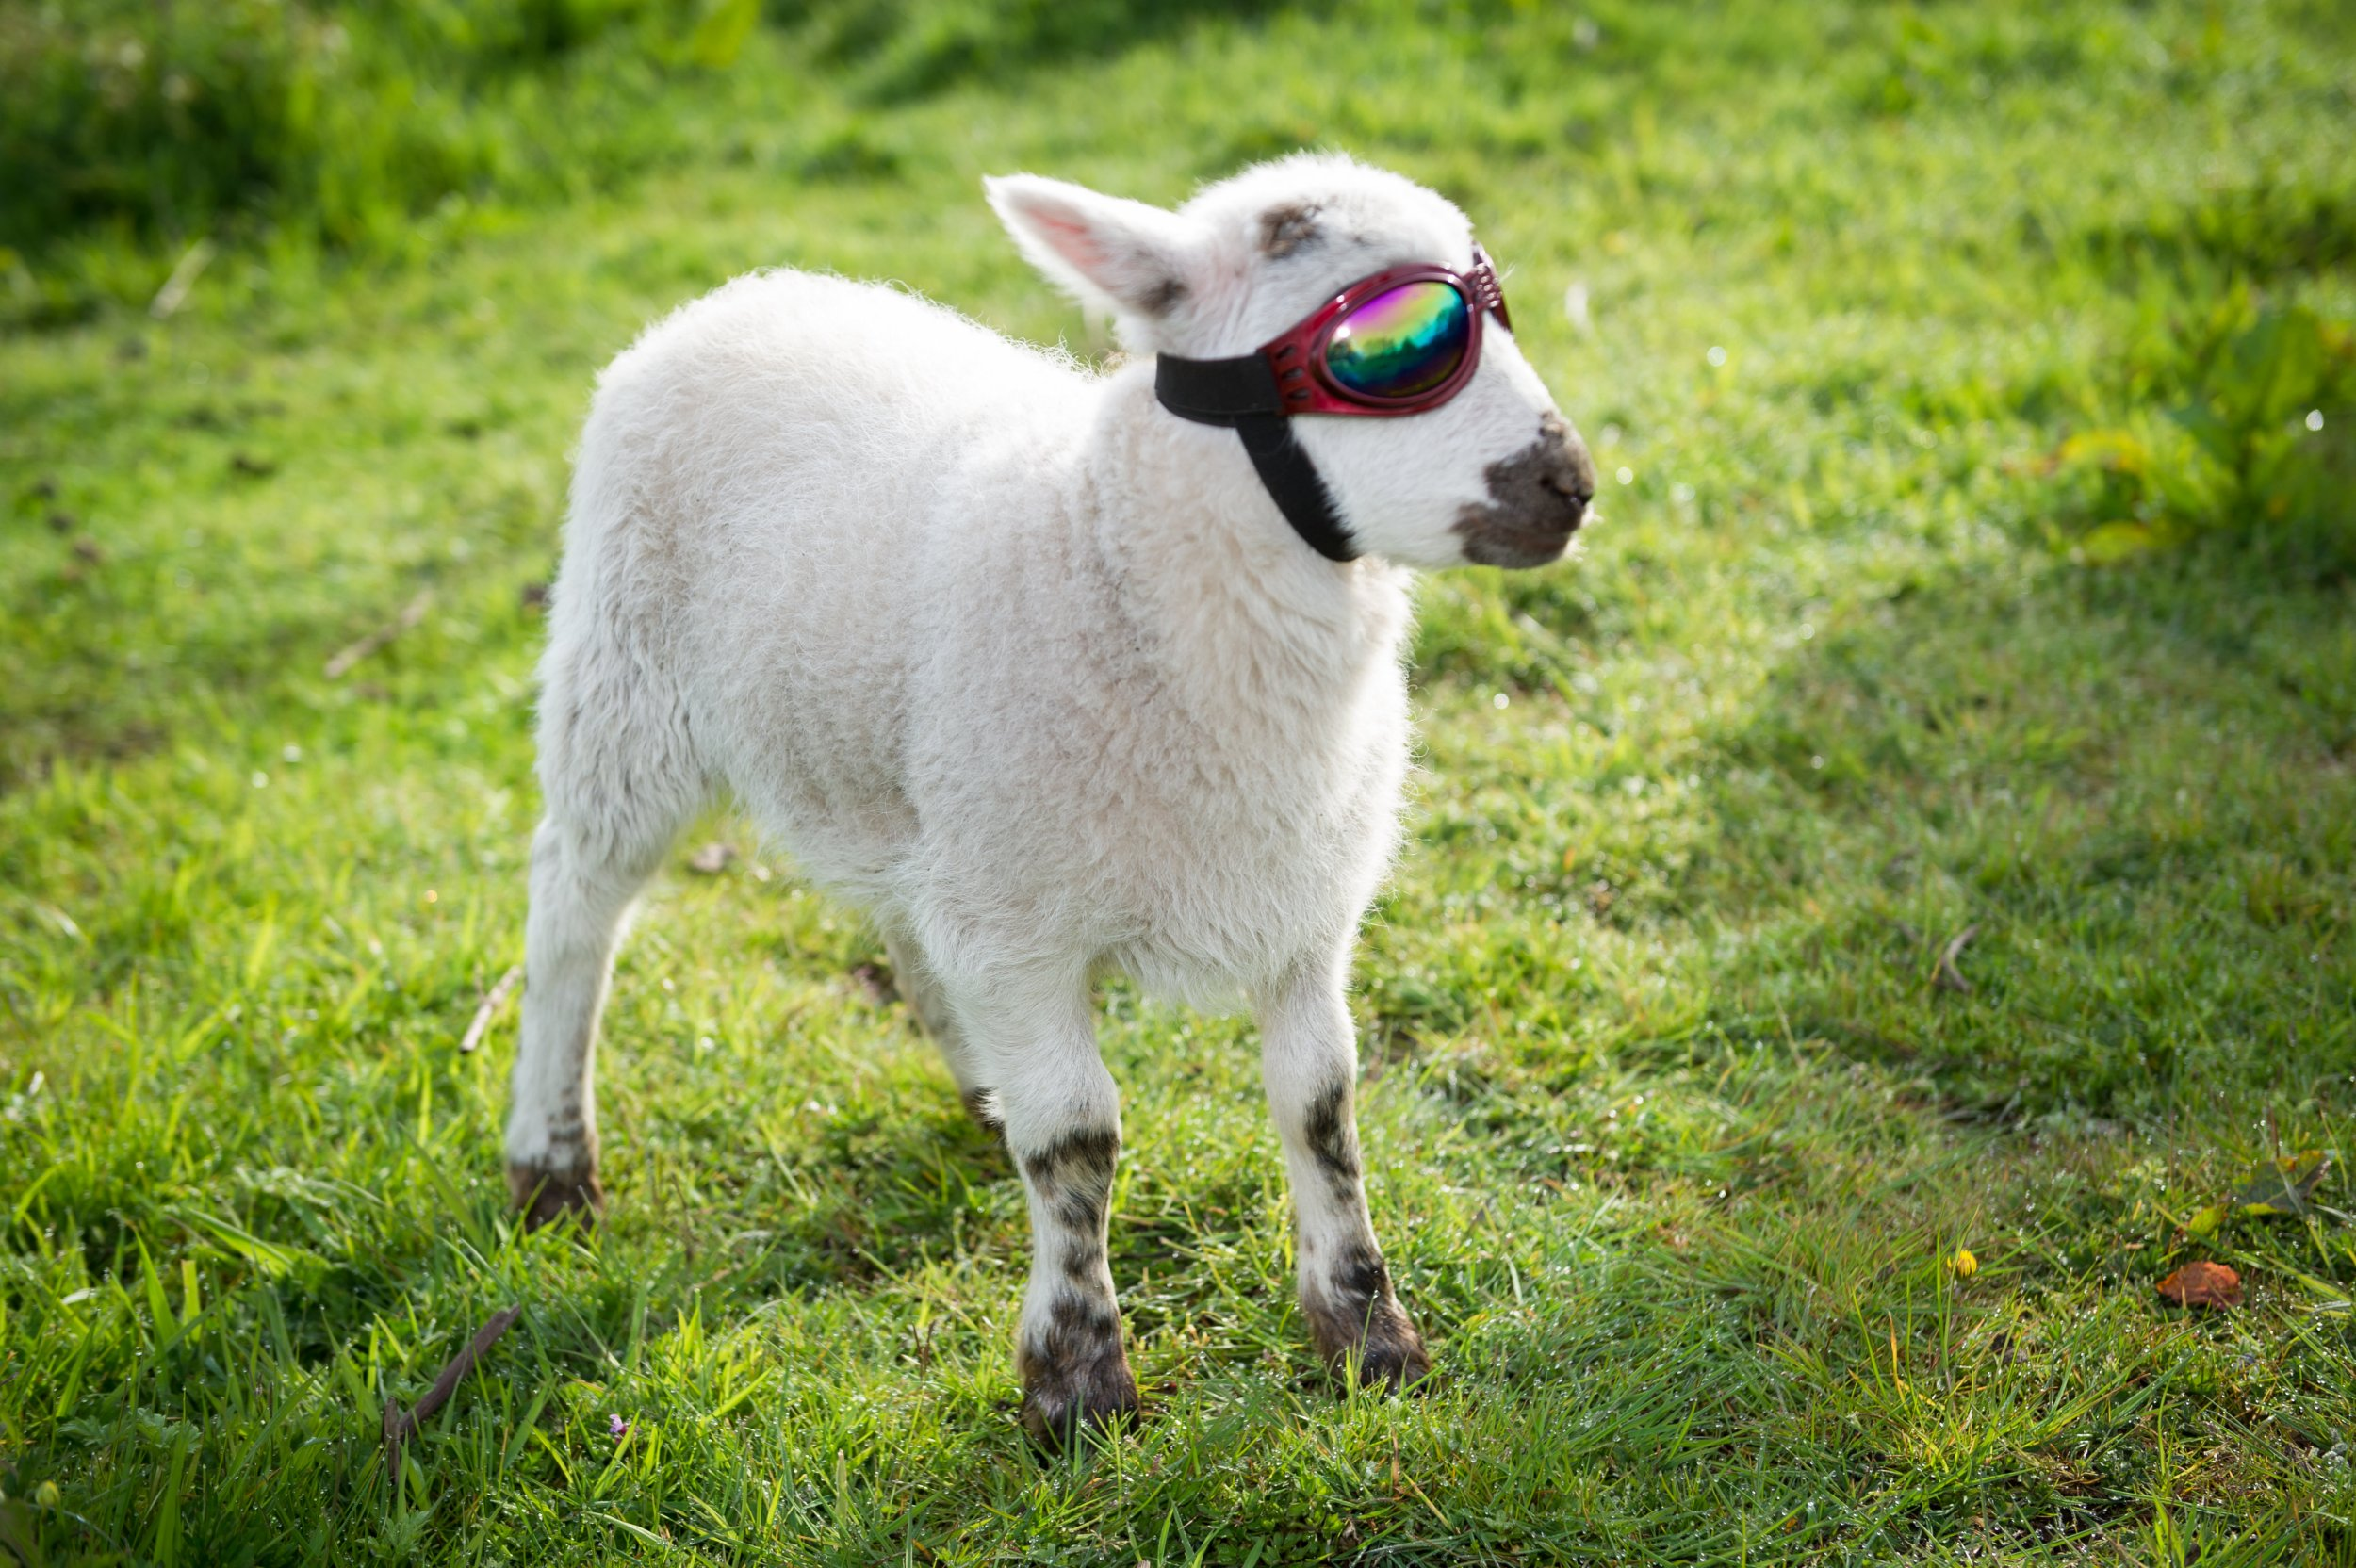 These adorable photos show a tiny lamb which has to wear sheep SUNGLASSES to protect its eyes.